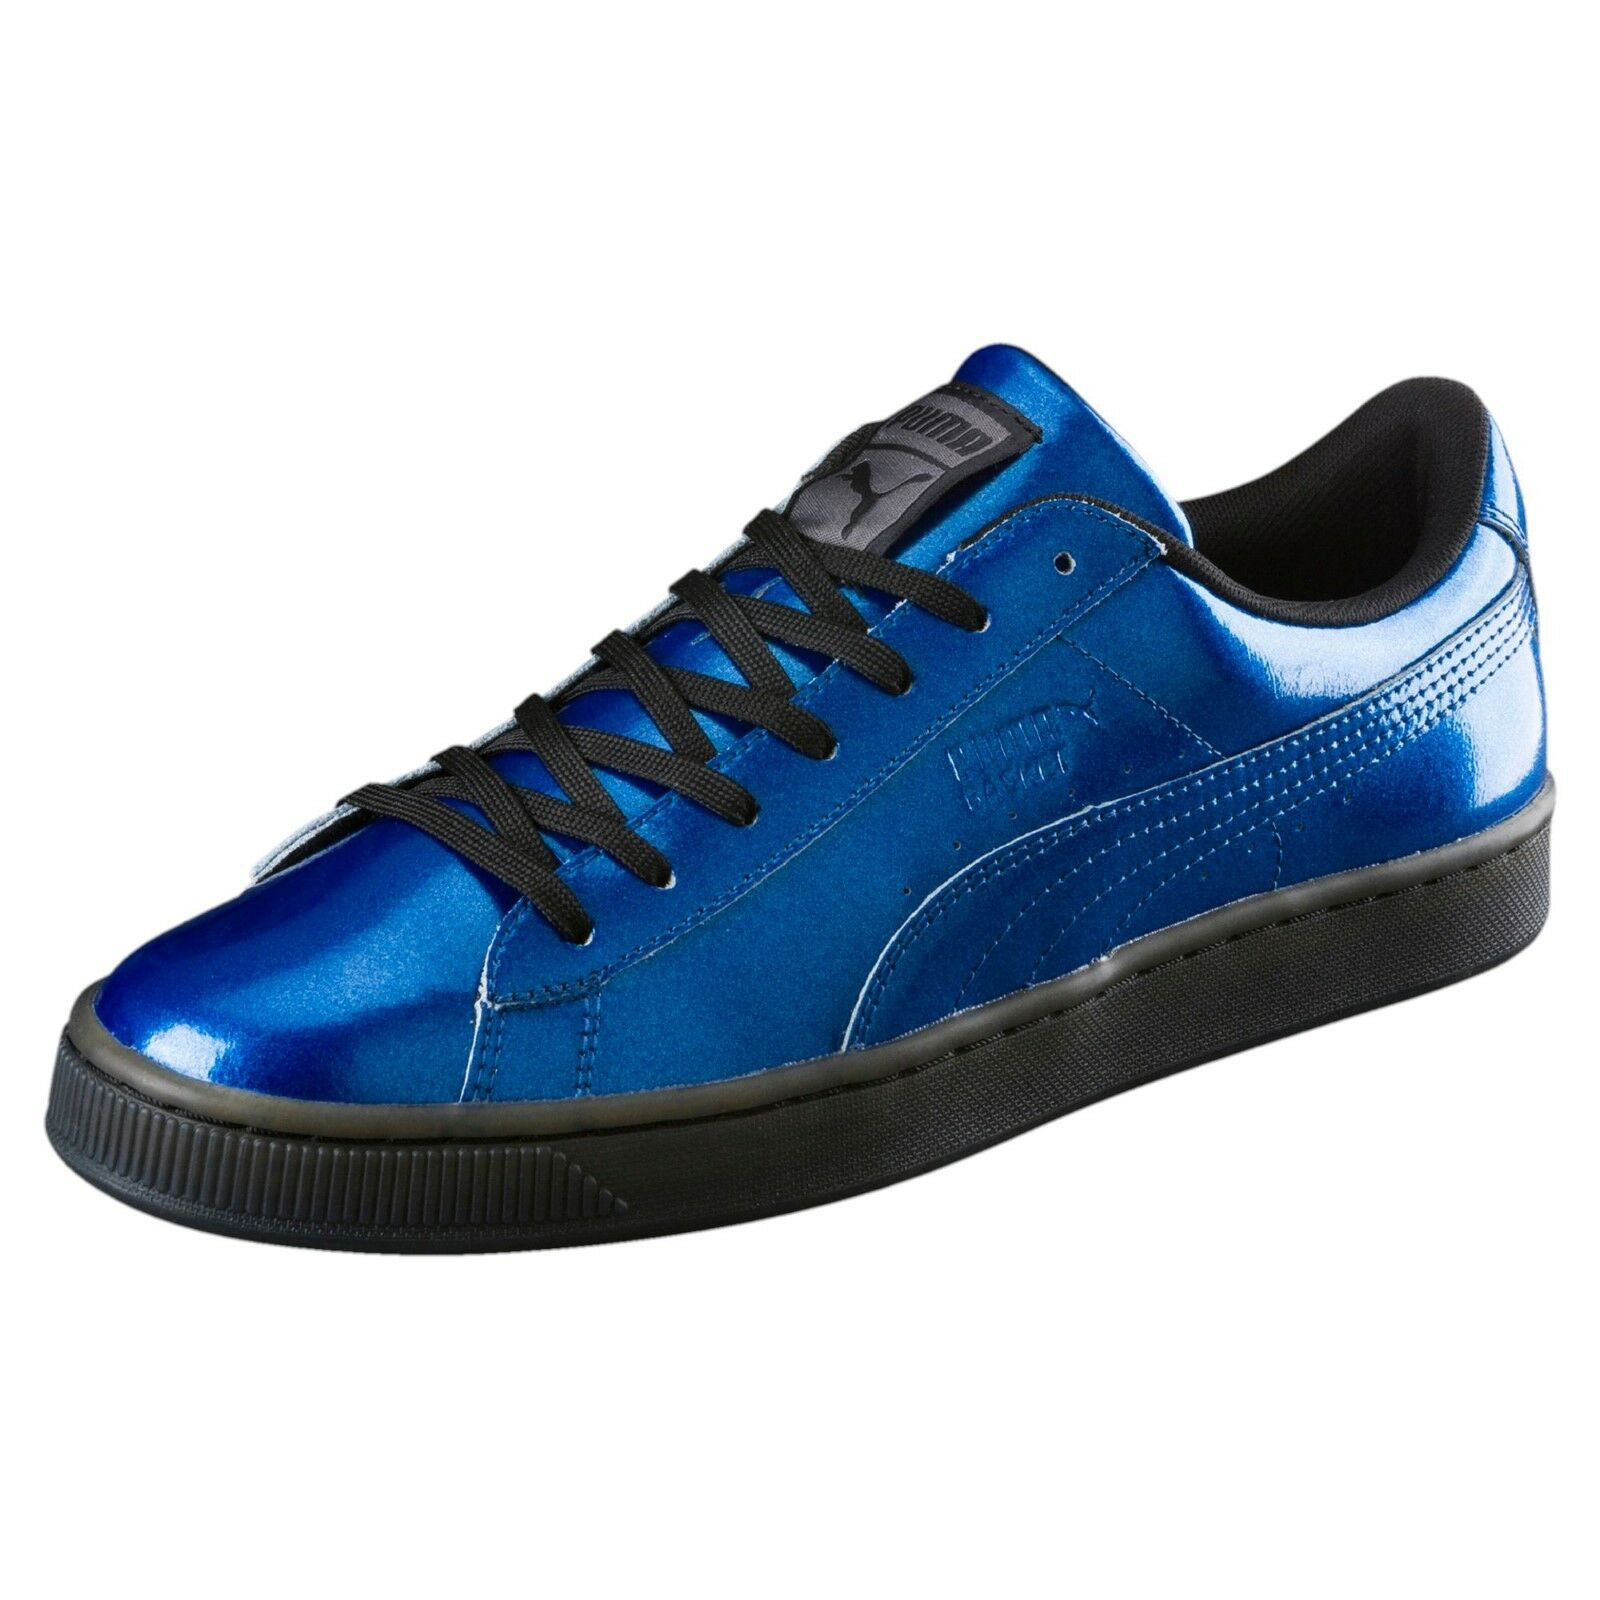 PUMA Men's Basket Classic Explosive Fashion Sneaker - Size 10 True bluee Black